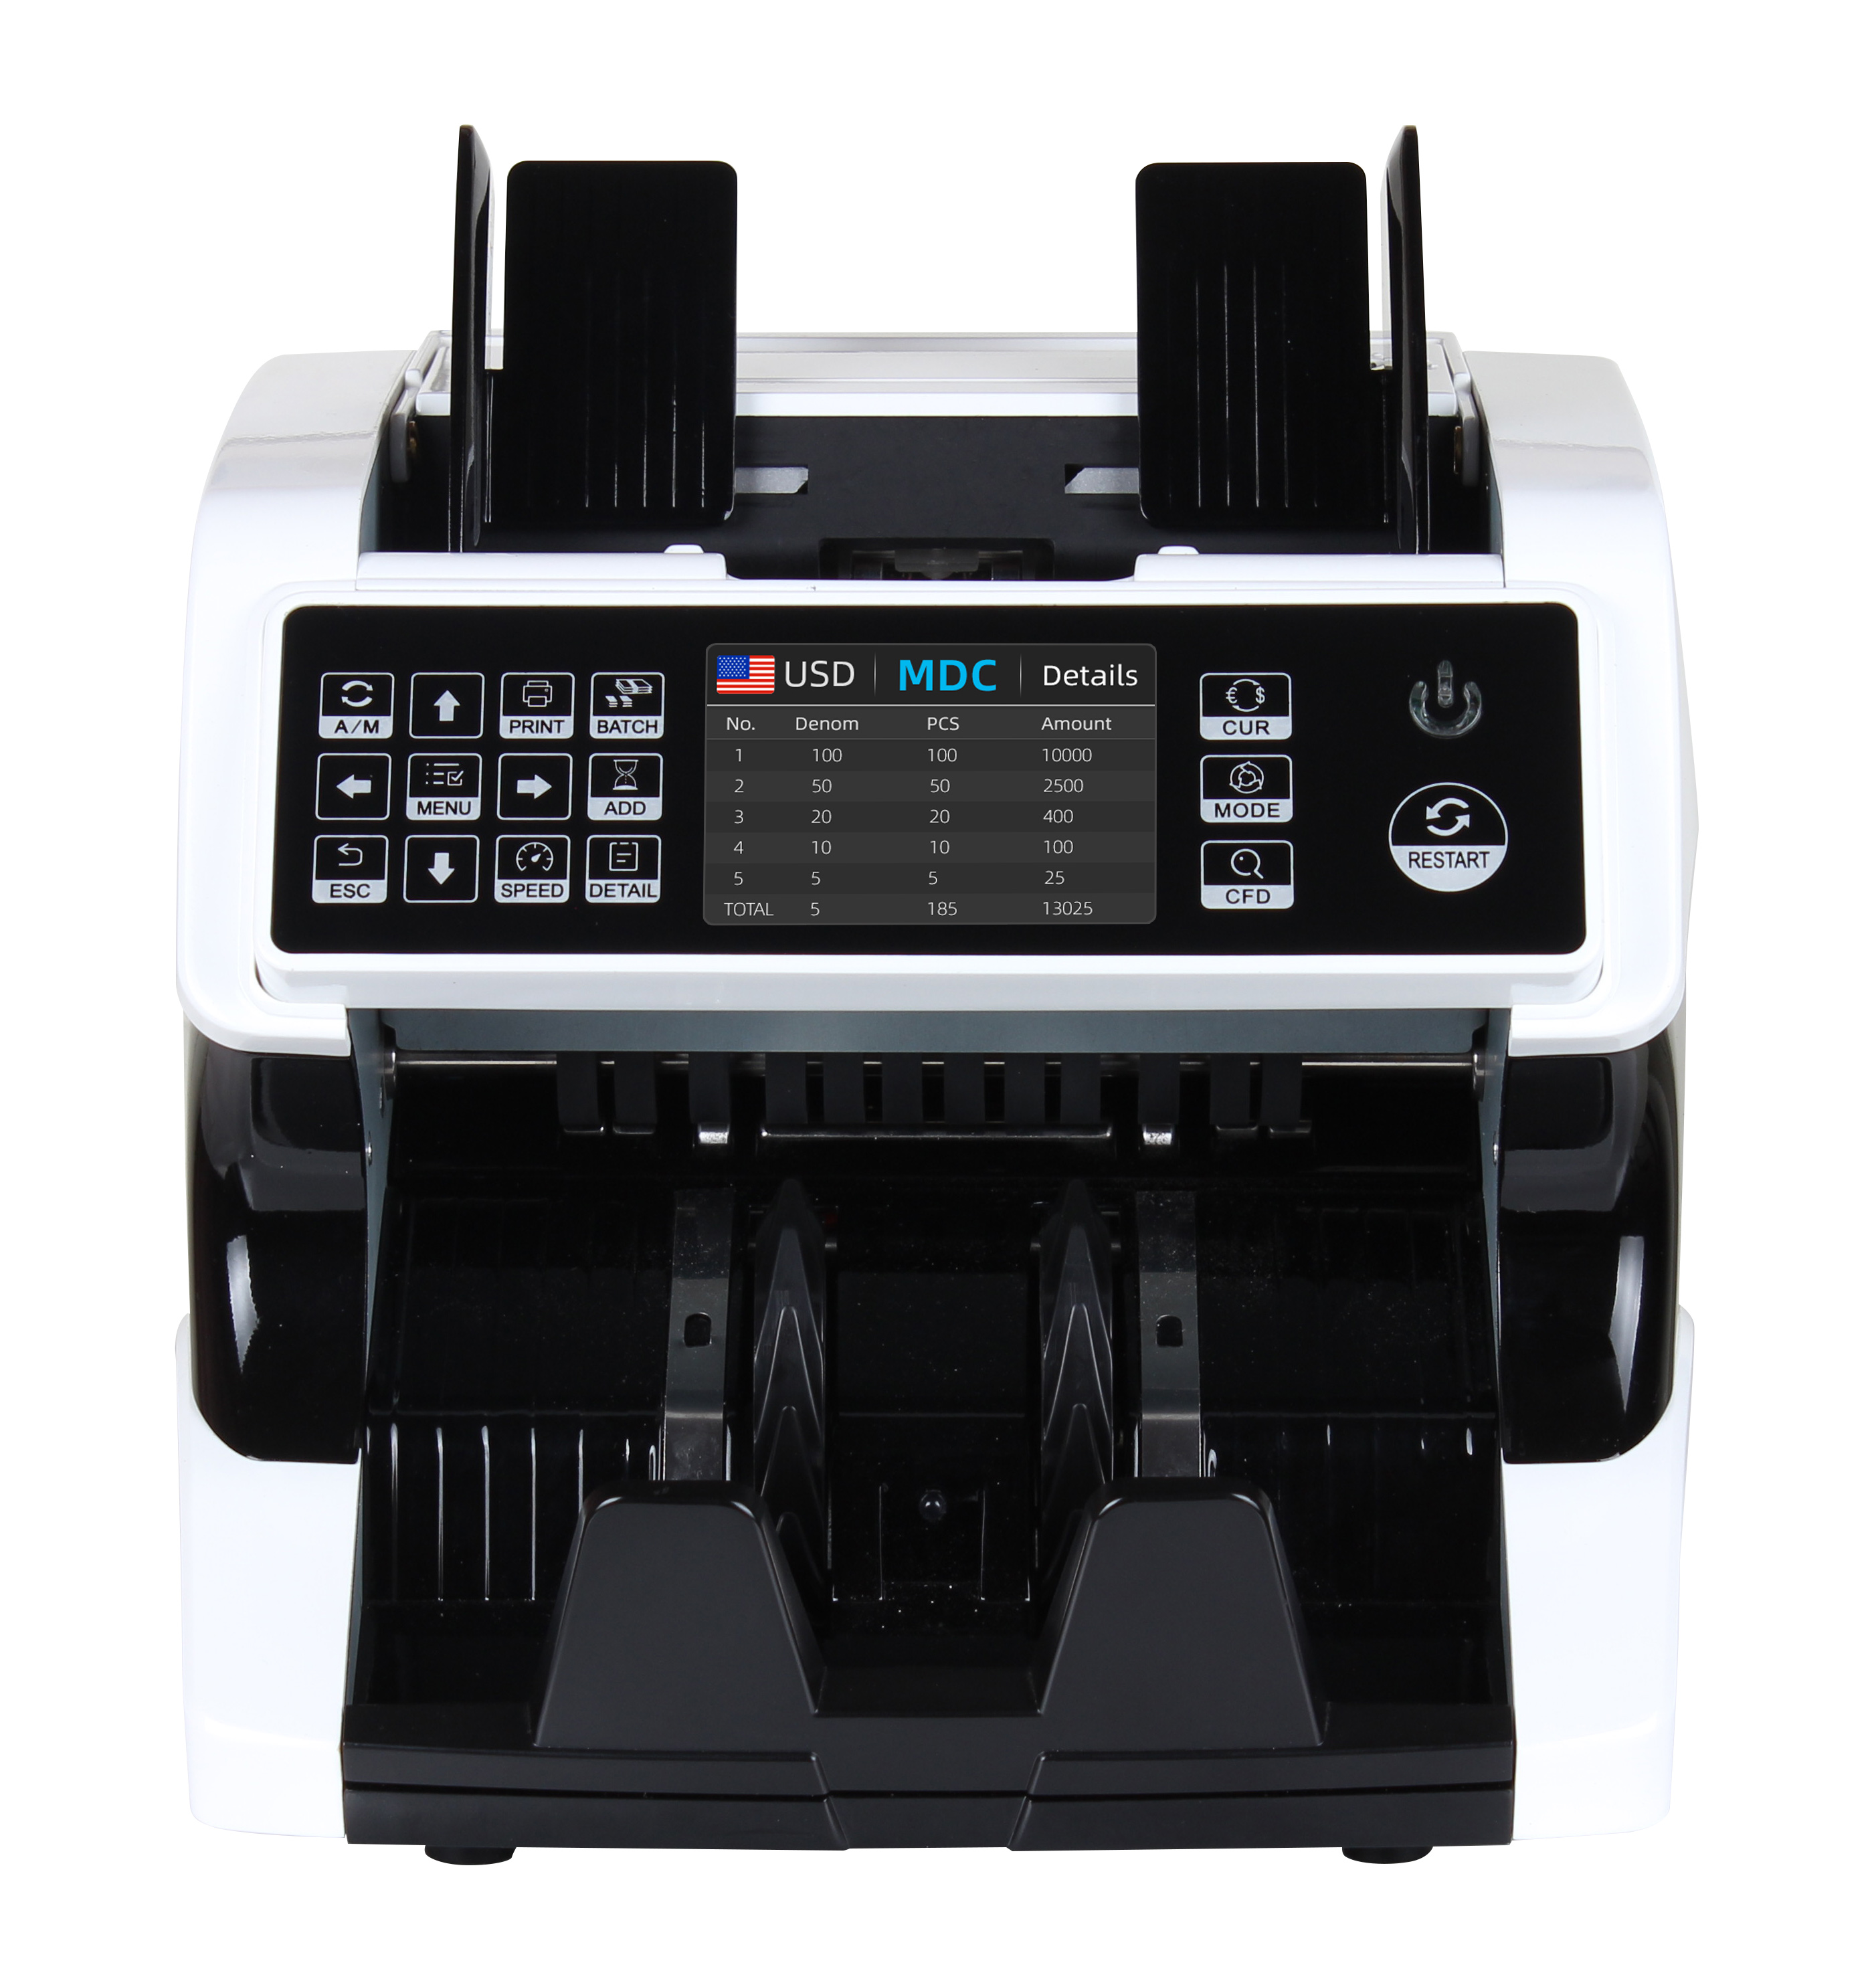 Top Loading Dual CIS Money Detector Mix Value Counter Cash Counting Machine